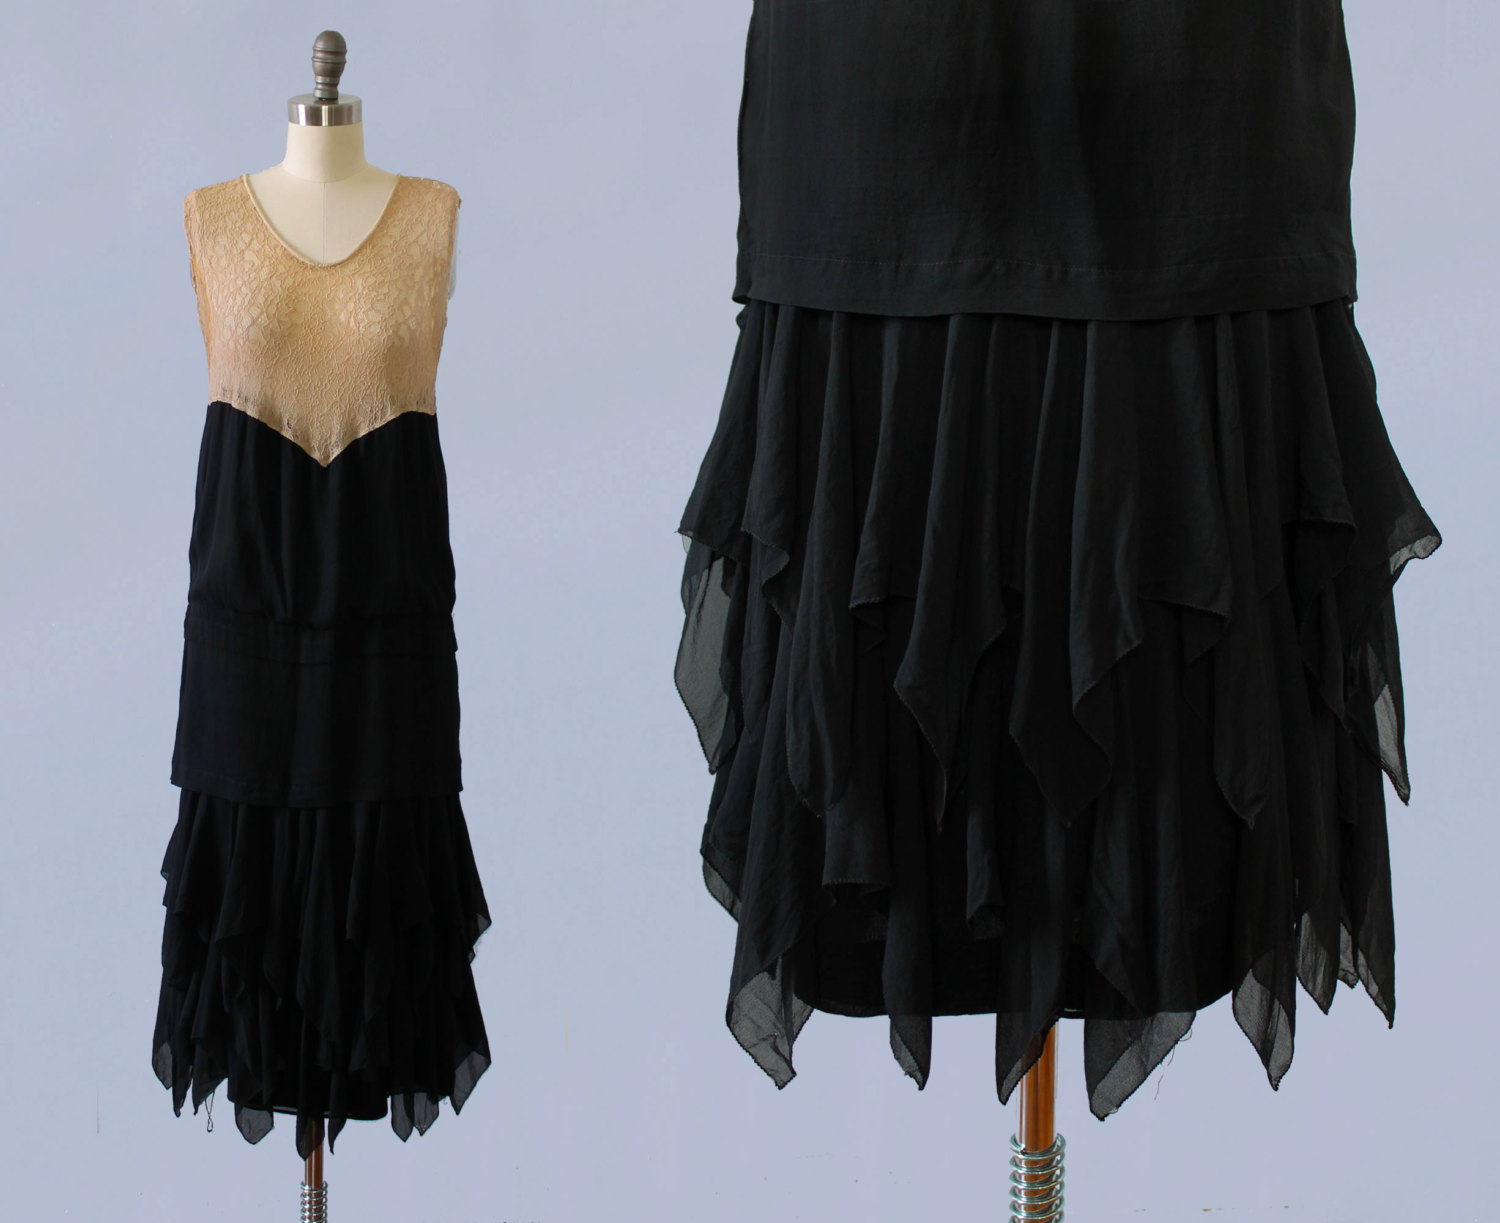 Silk and lace dress. 1920s.